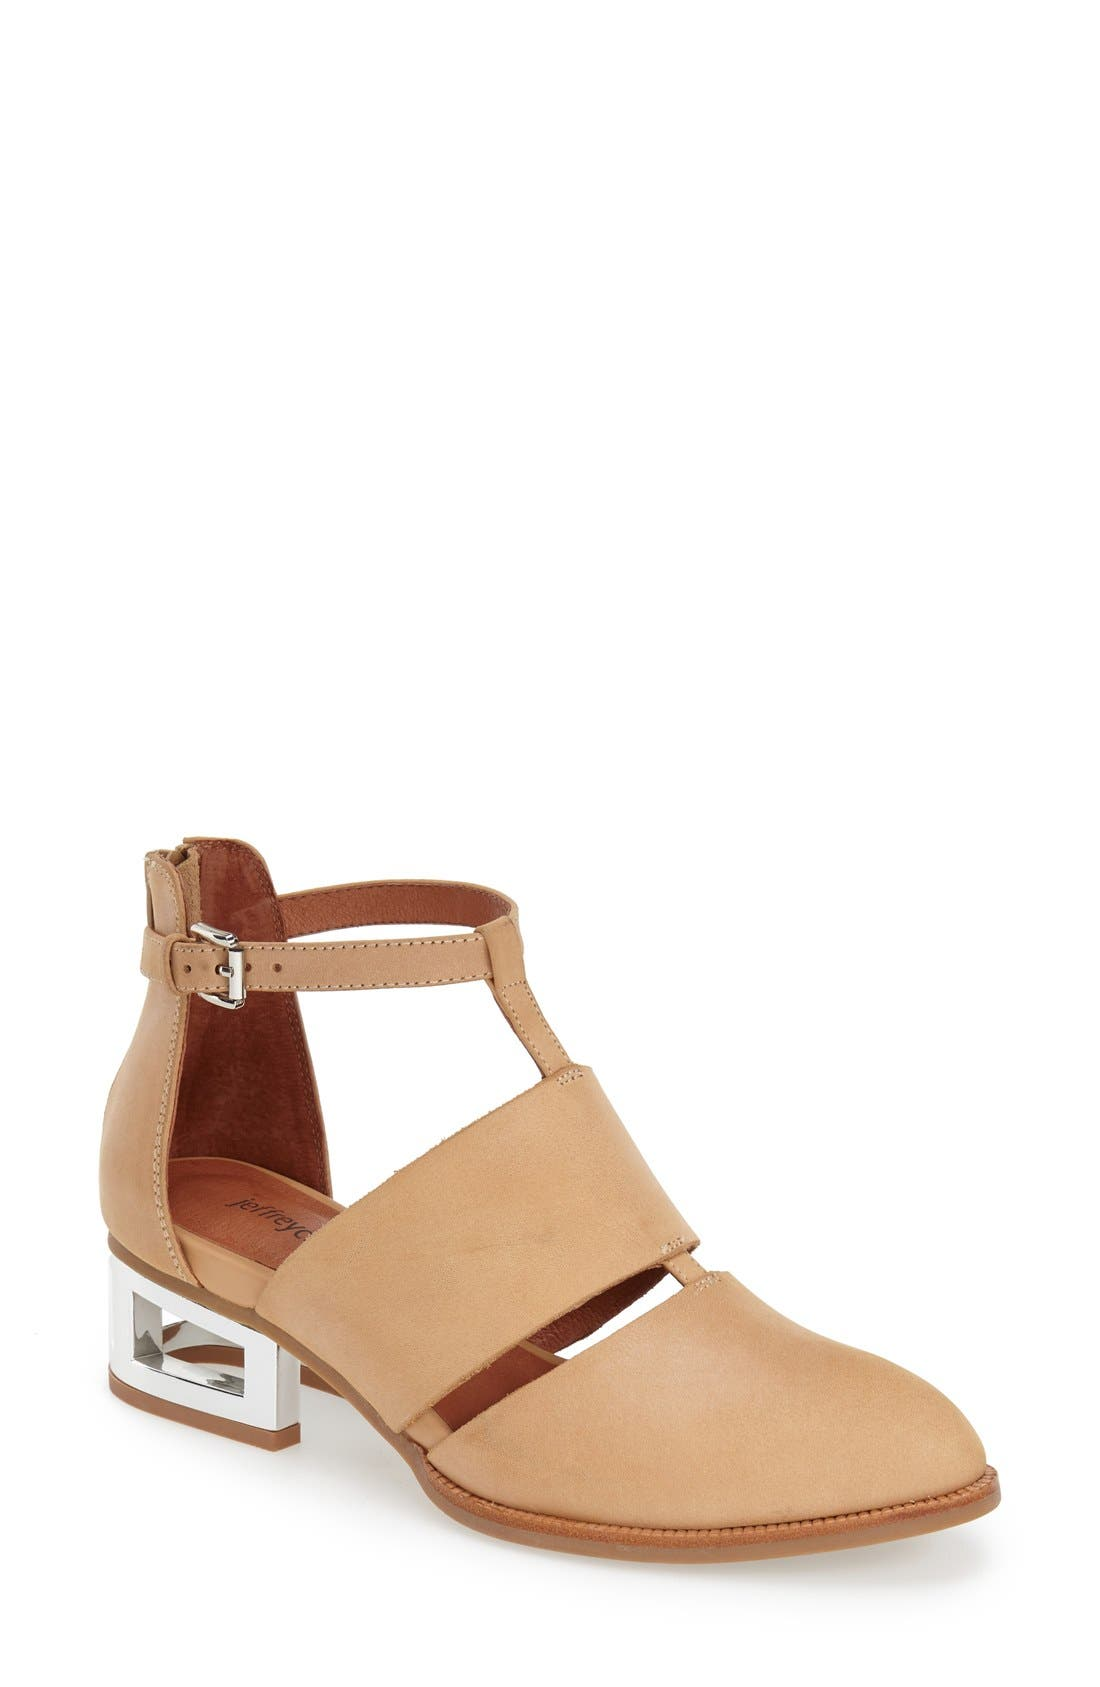 Alternate Image 1 Selected - Jeffrey Campbell 'Carina' Ankle Boot (Women)